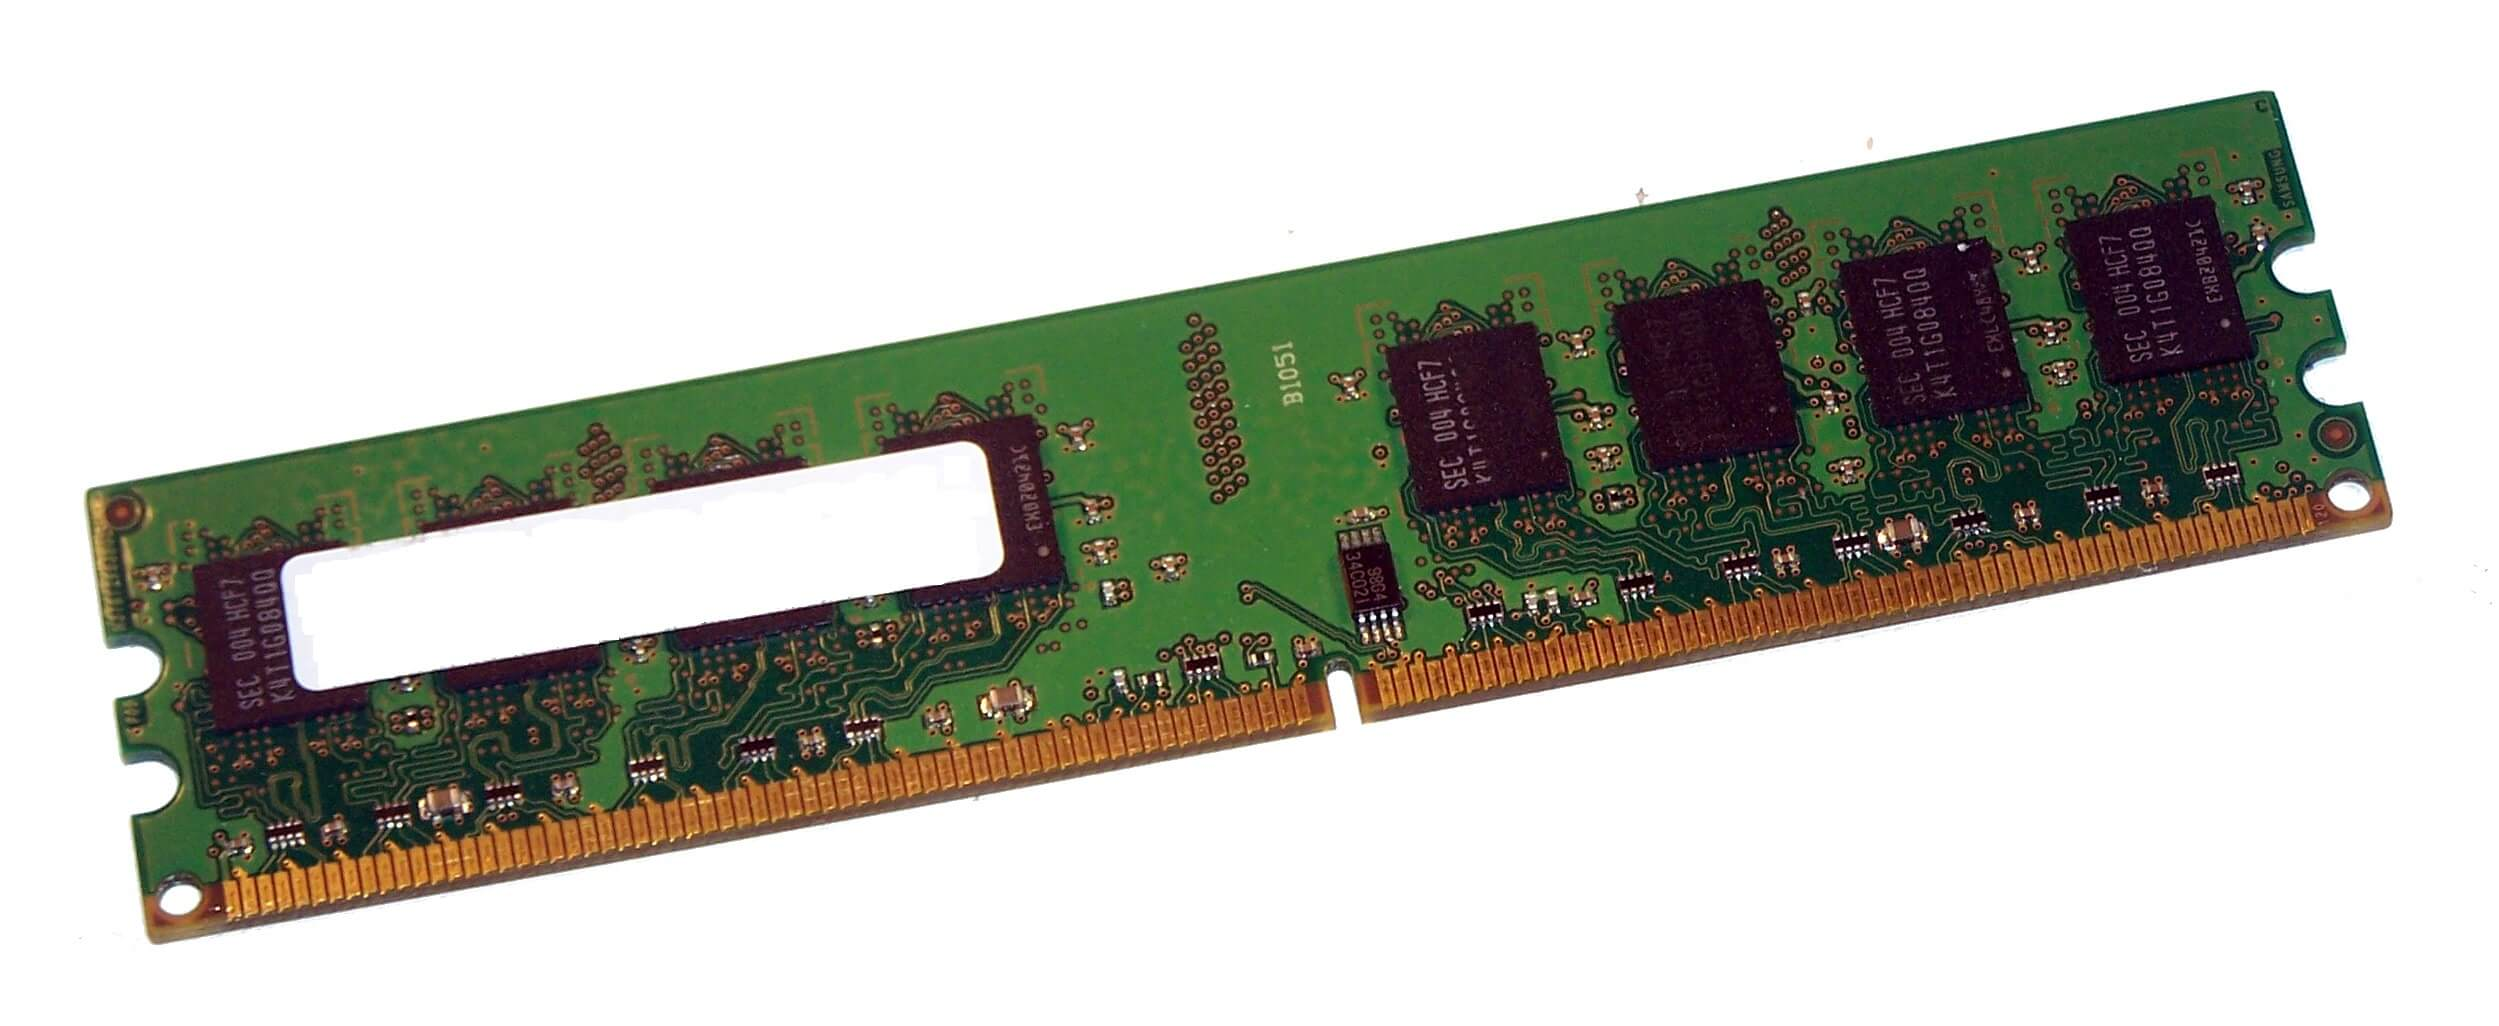 PAMIĘĆ DDR2 1024MB 128Mx72 ECC 533Hz DO SERWERA